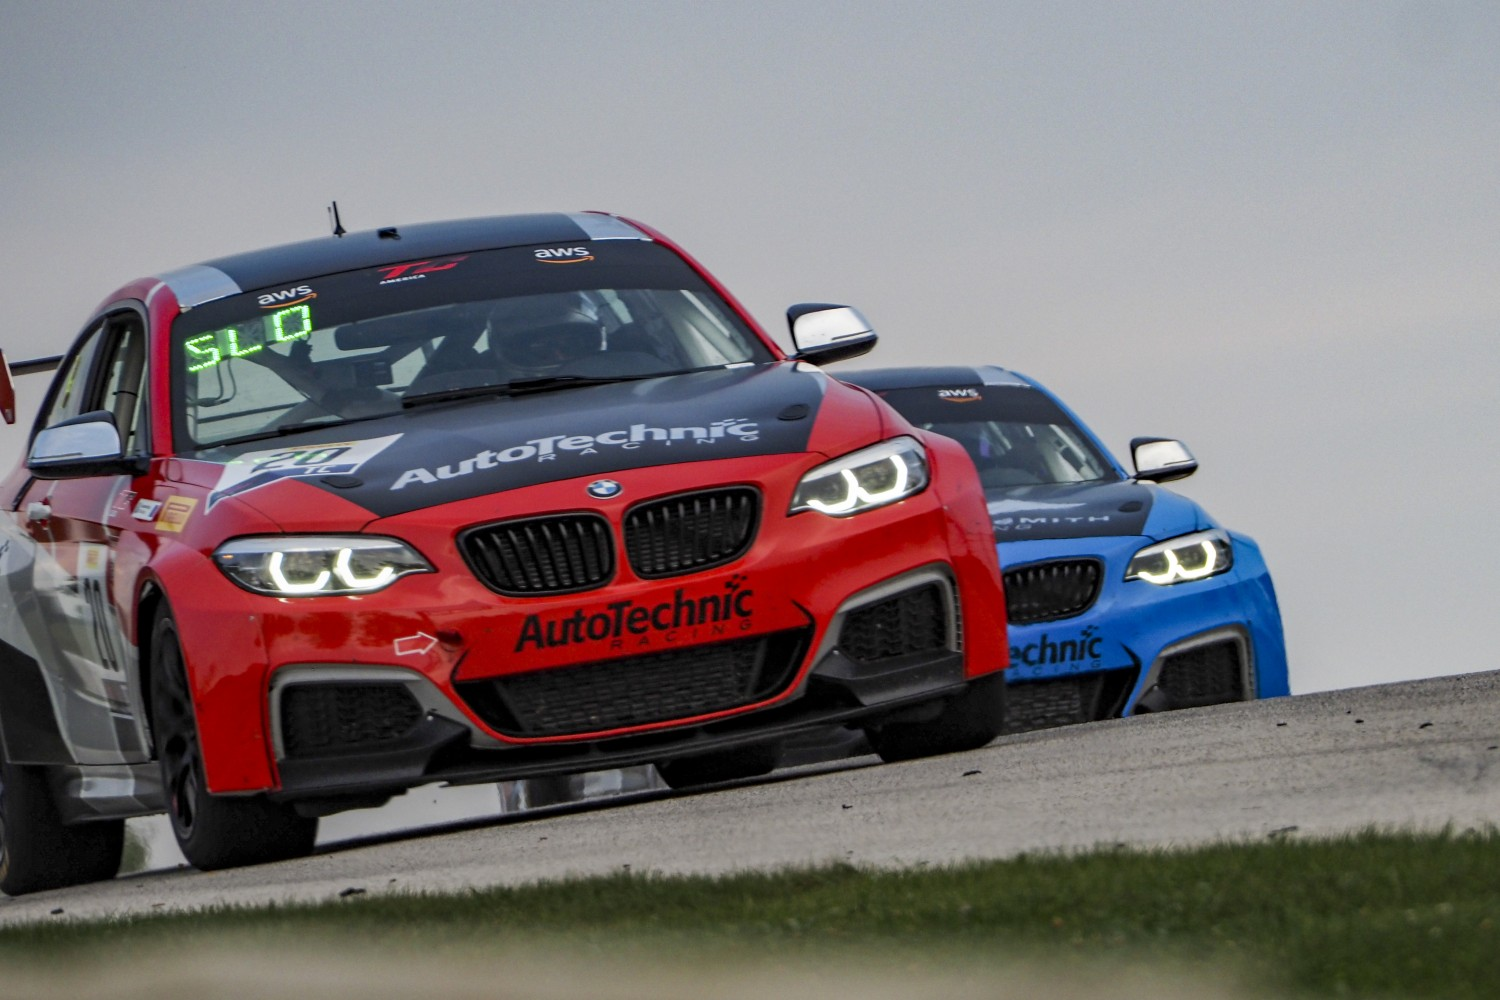 #20 BMW M240iR Cup of Rob Slonaker, Auto Technic Racing, TC, SRO America, Road America, Elkhart Lake, WI, July 2020.